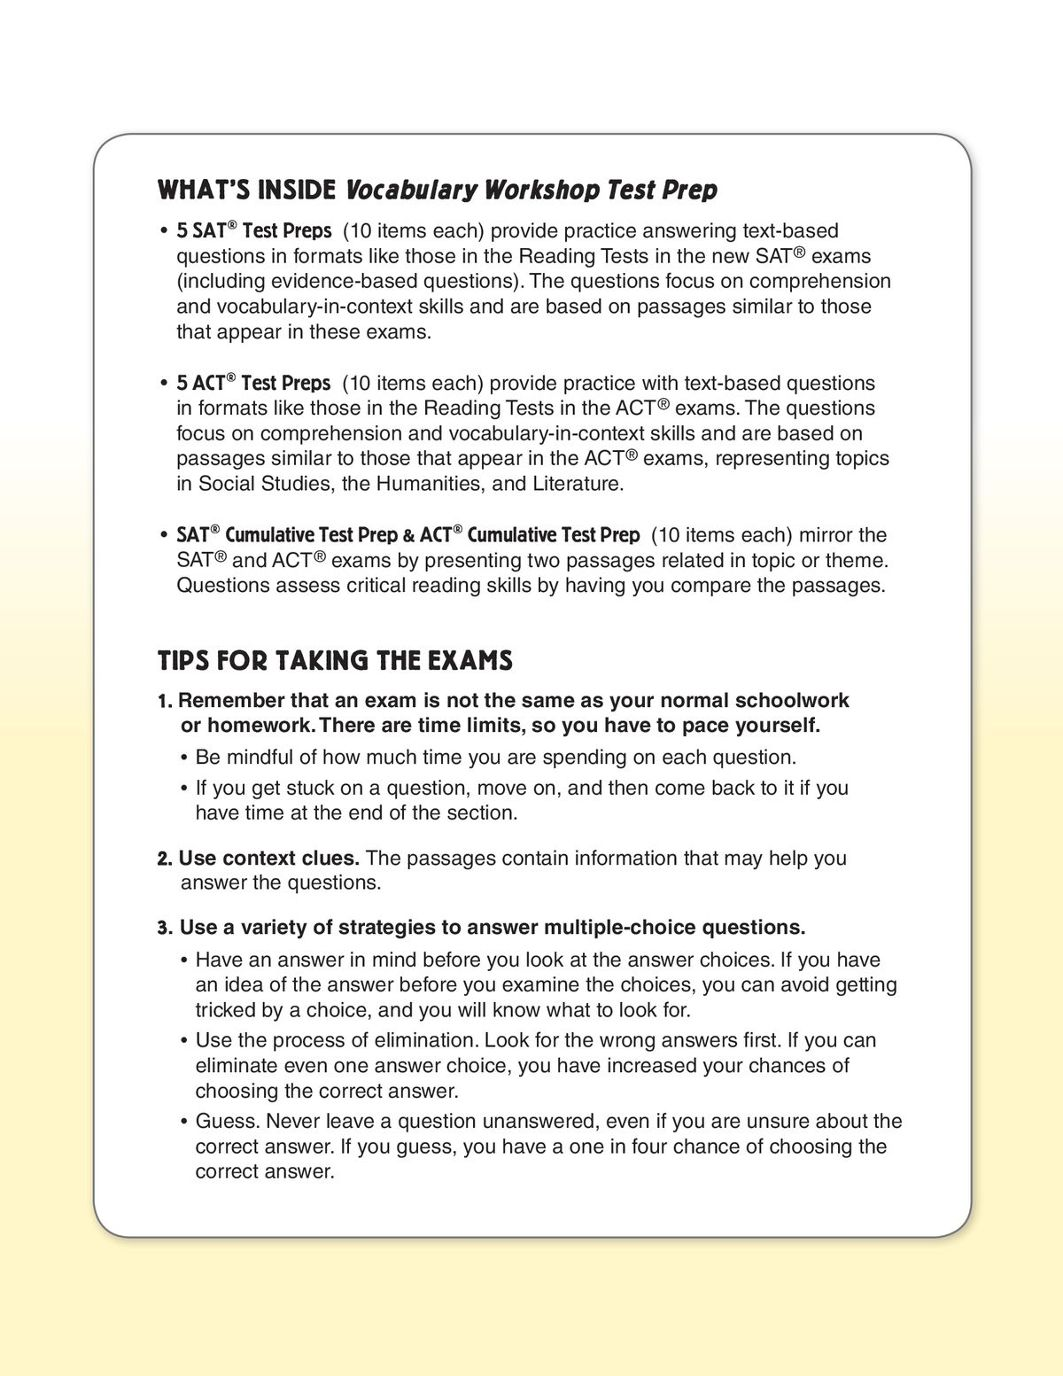 cover letter Essay Examples For Sat examples for sat essay essay Ivy Global  s New SAT